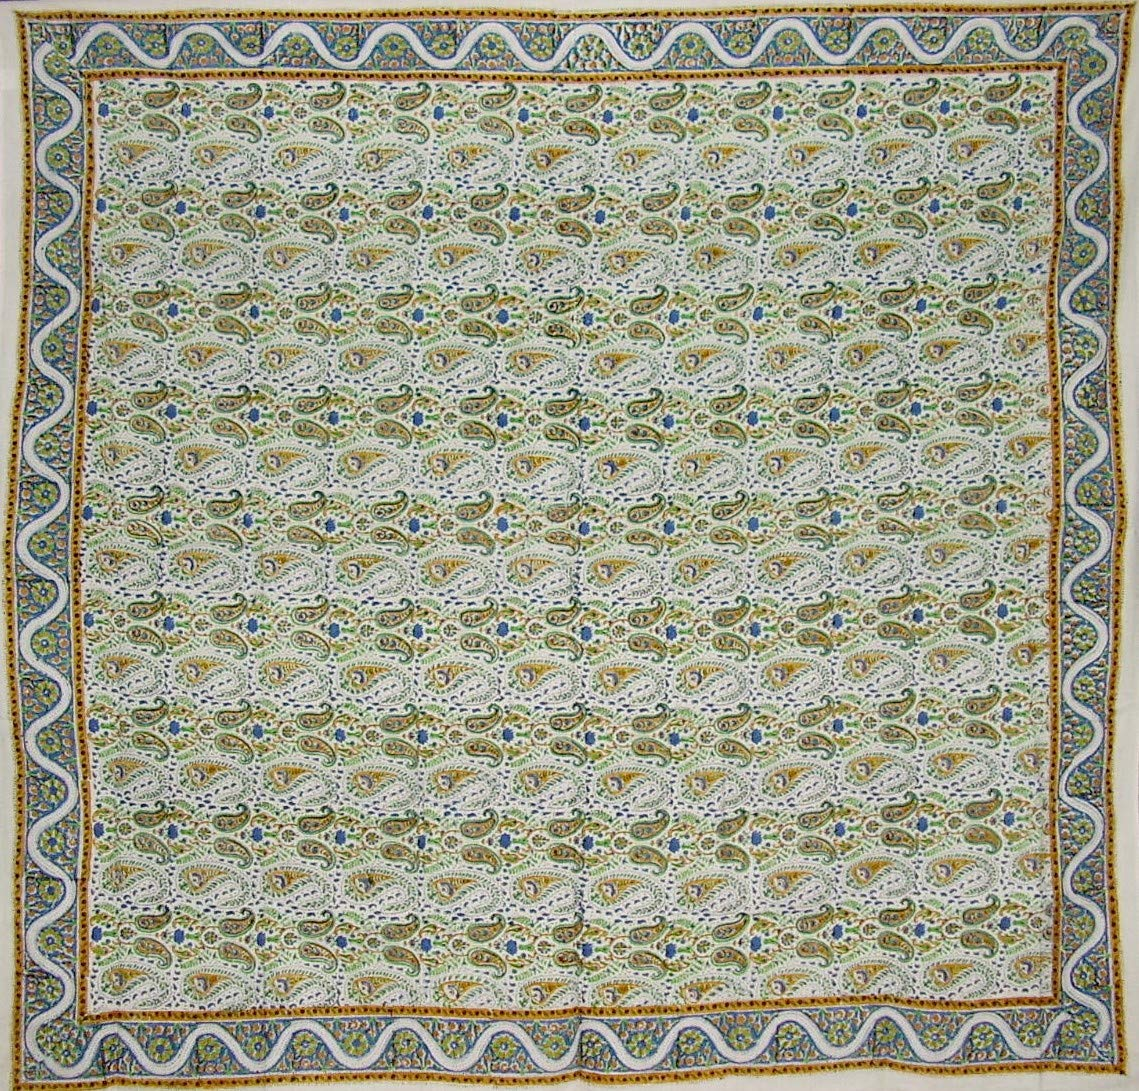 "India Arts Hand Block Printed Floral Square Cotton Tablecloth 72"" x 72"""